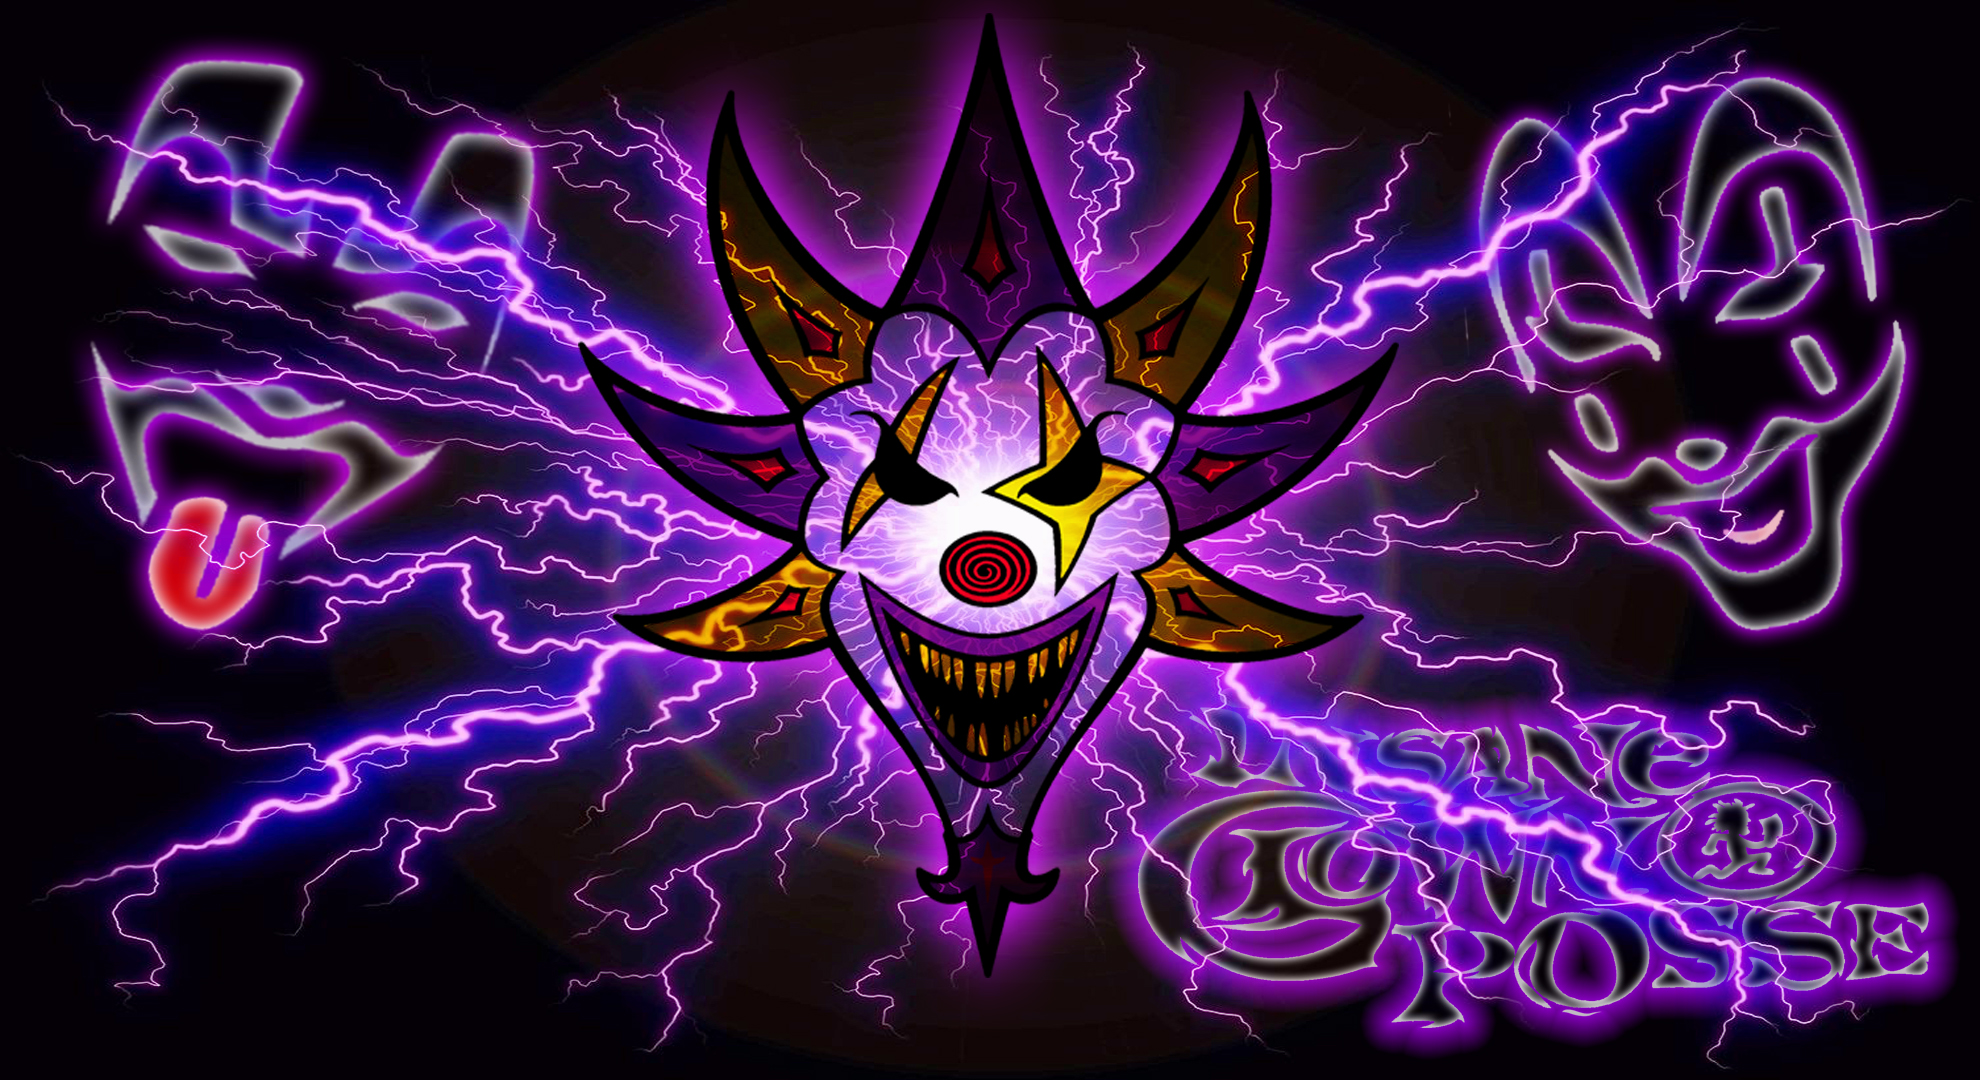 icp mighty death pop wallpaper images